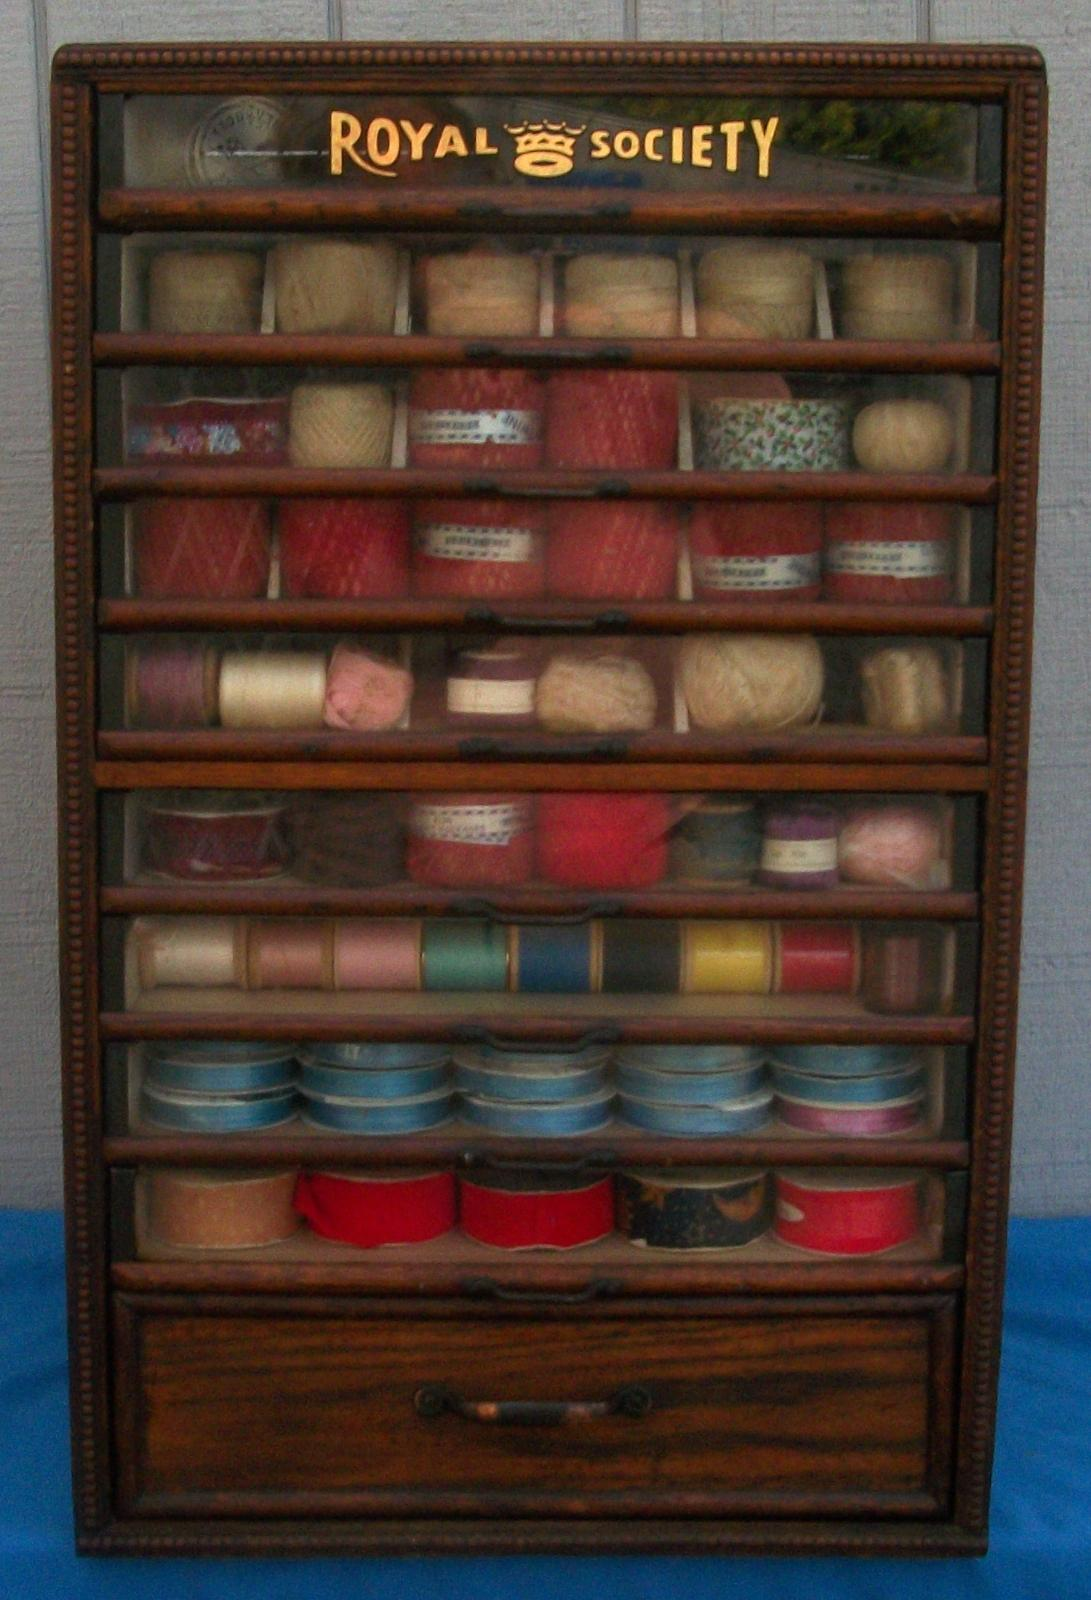 Royal Society Spool Cabinet with 9 Glass Front Drawers, BRASS LANTERN  ANTIQUES - Royal Society Spool Cabinet With 9 Glass Front Drawers, BRASS